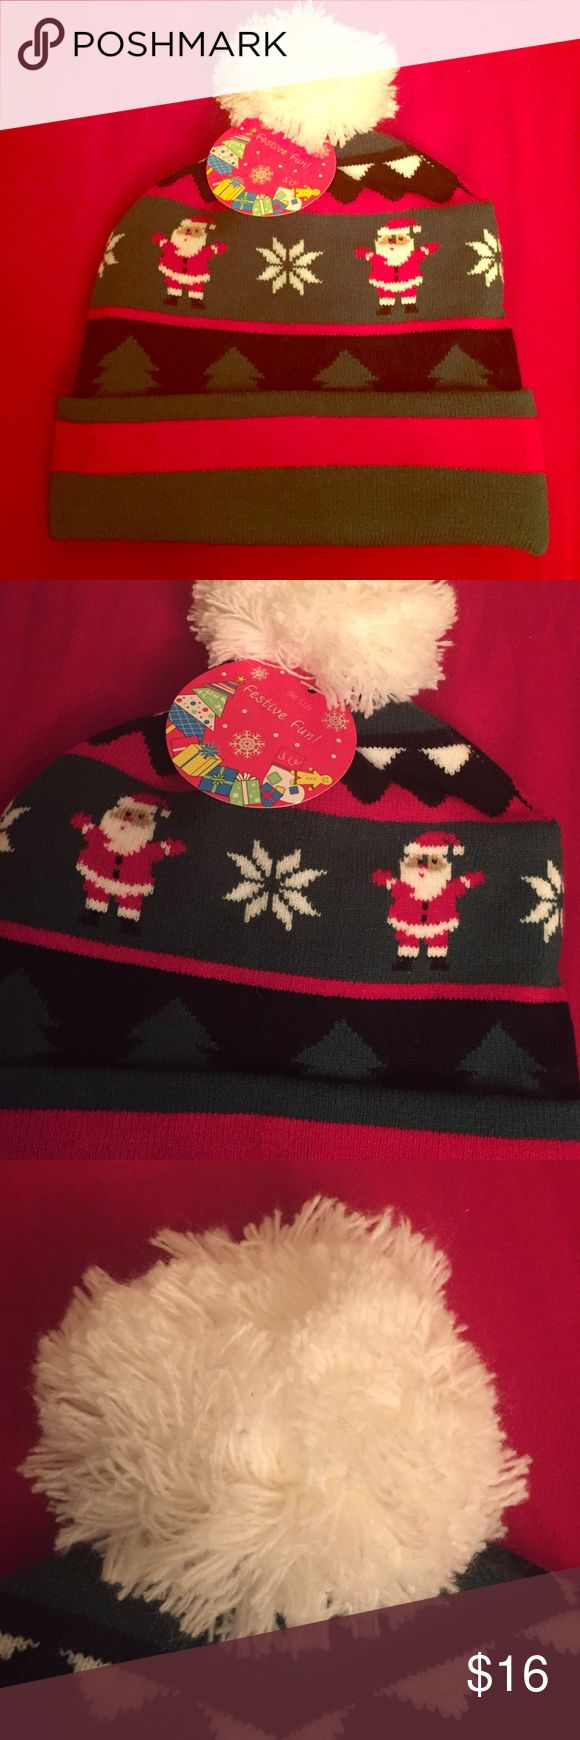 🆕 Holiday Pom Pom Beanie 🎅🏽 Festive Fun Holiday Beanie. Girls & Women. Also Unisex. OSFM. Colors: Mainly Forest Green and Red. Designs include Snowflakes & Santas. Also Diamonds & Stripes. Cuffed. White Pom Pom. Appears to be Acrylic. Label does not say. Brand New. Excellent Condition. No Trades.🎅🏽 Capelli of New York Accessories Hats